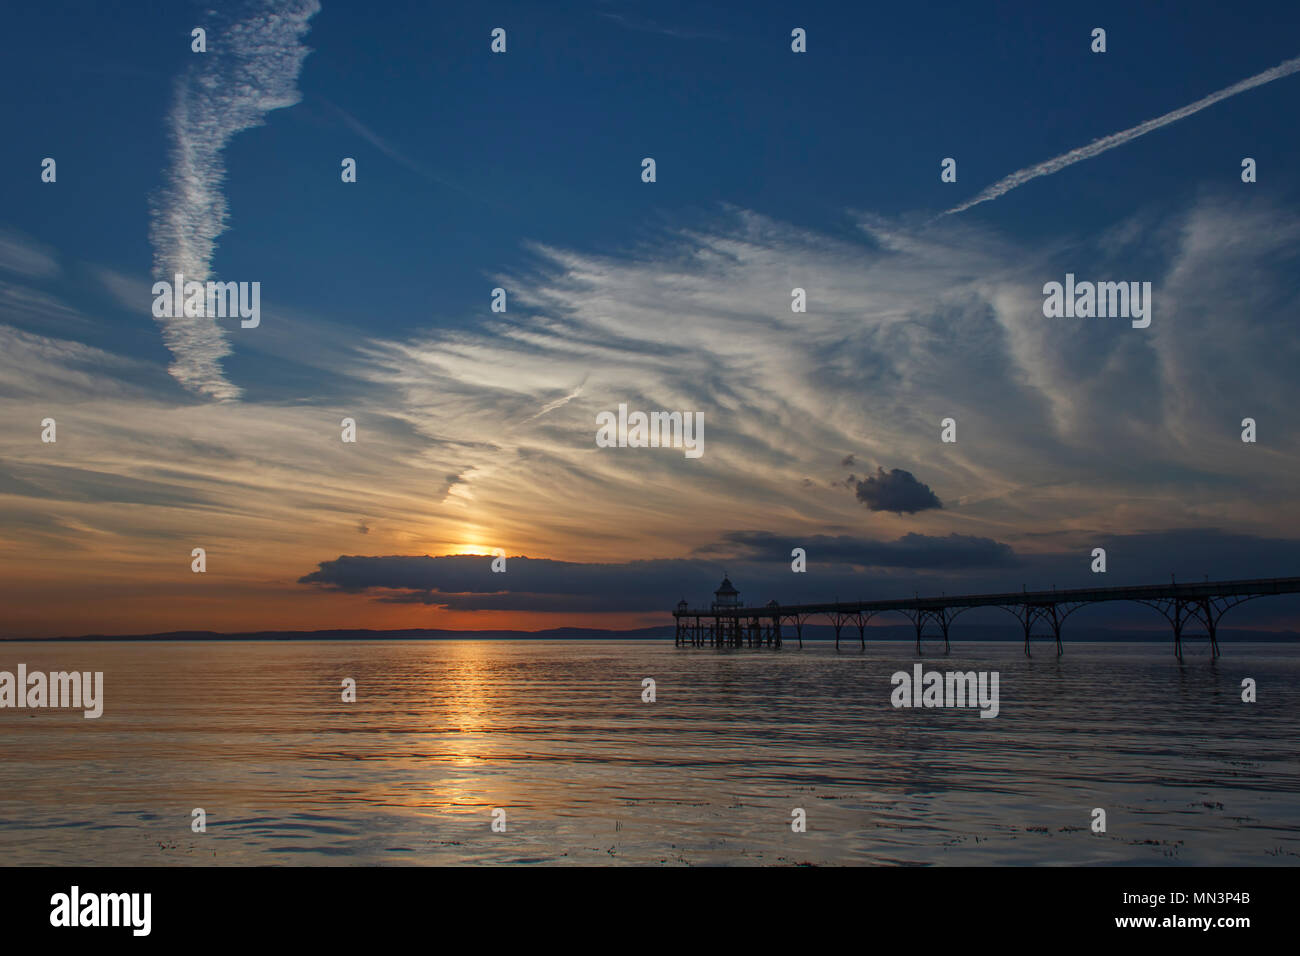 Clevedon Pier at Sunset - Stock Image